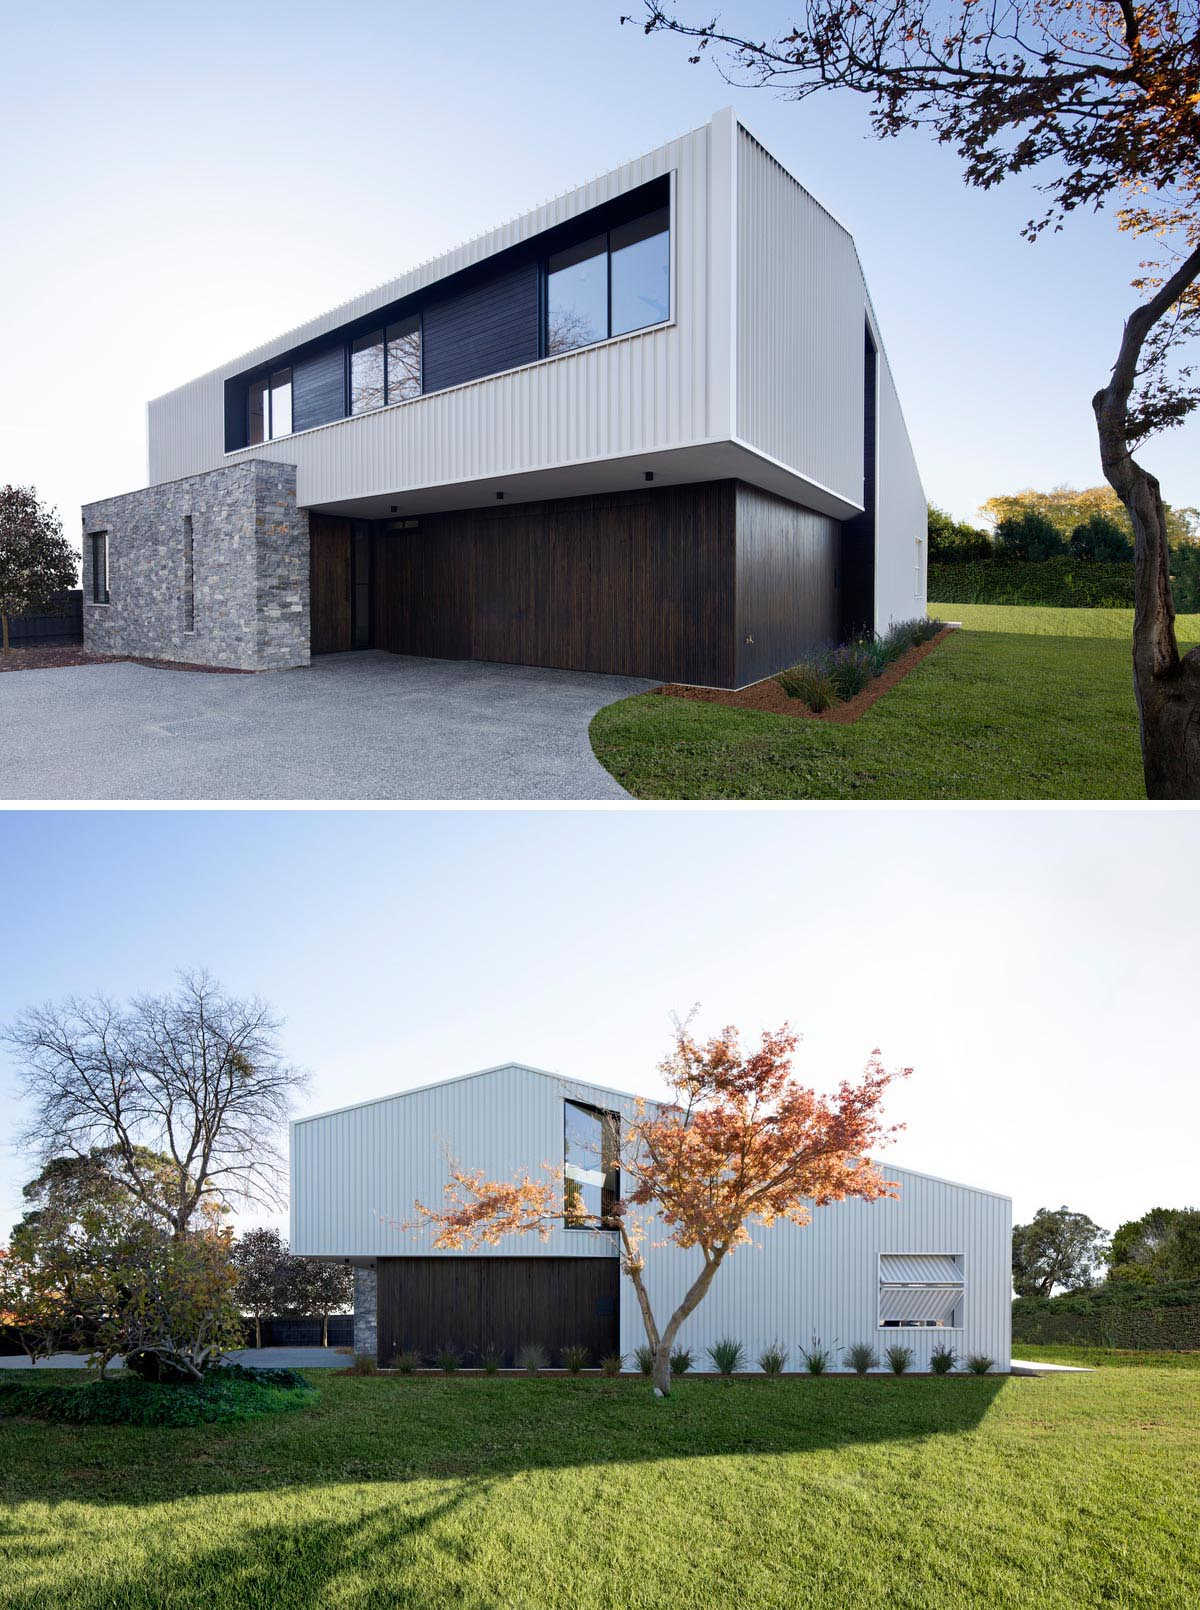 The exterior of this modern home features metal cladding with a white finish, black window frames, dark wood accents, and drystone stacked walls.